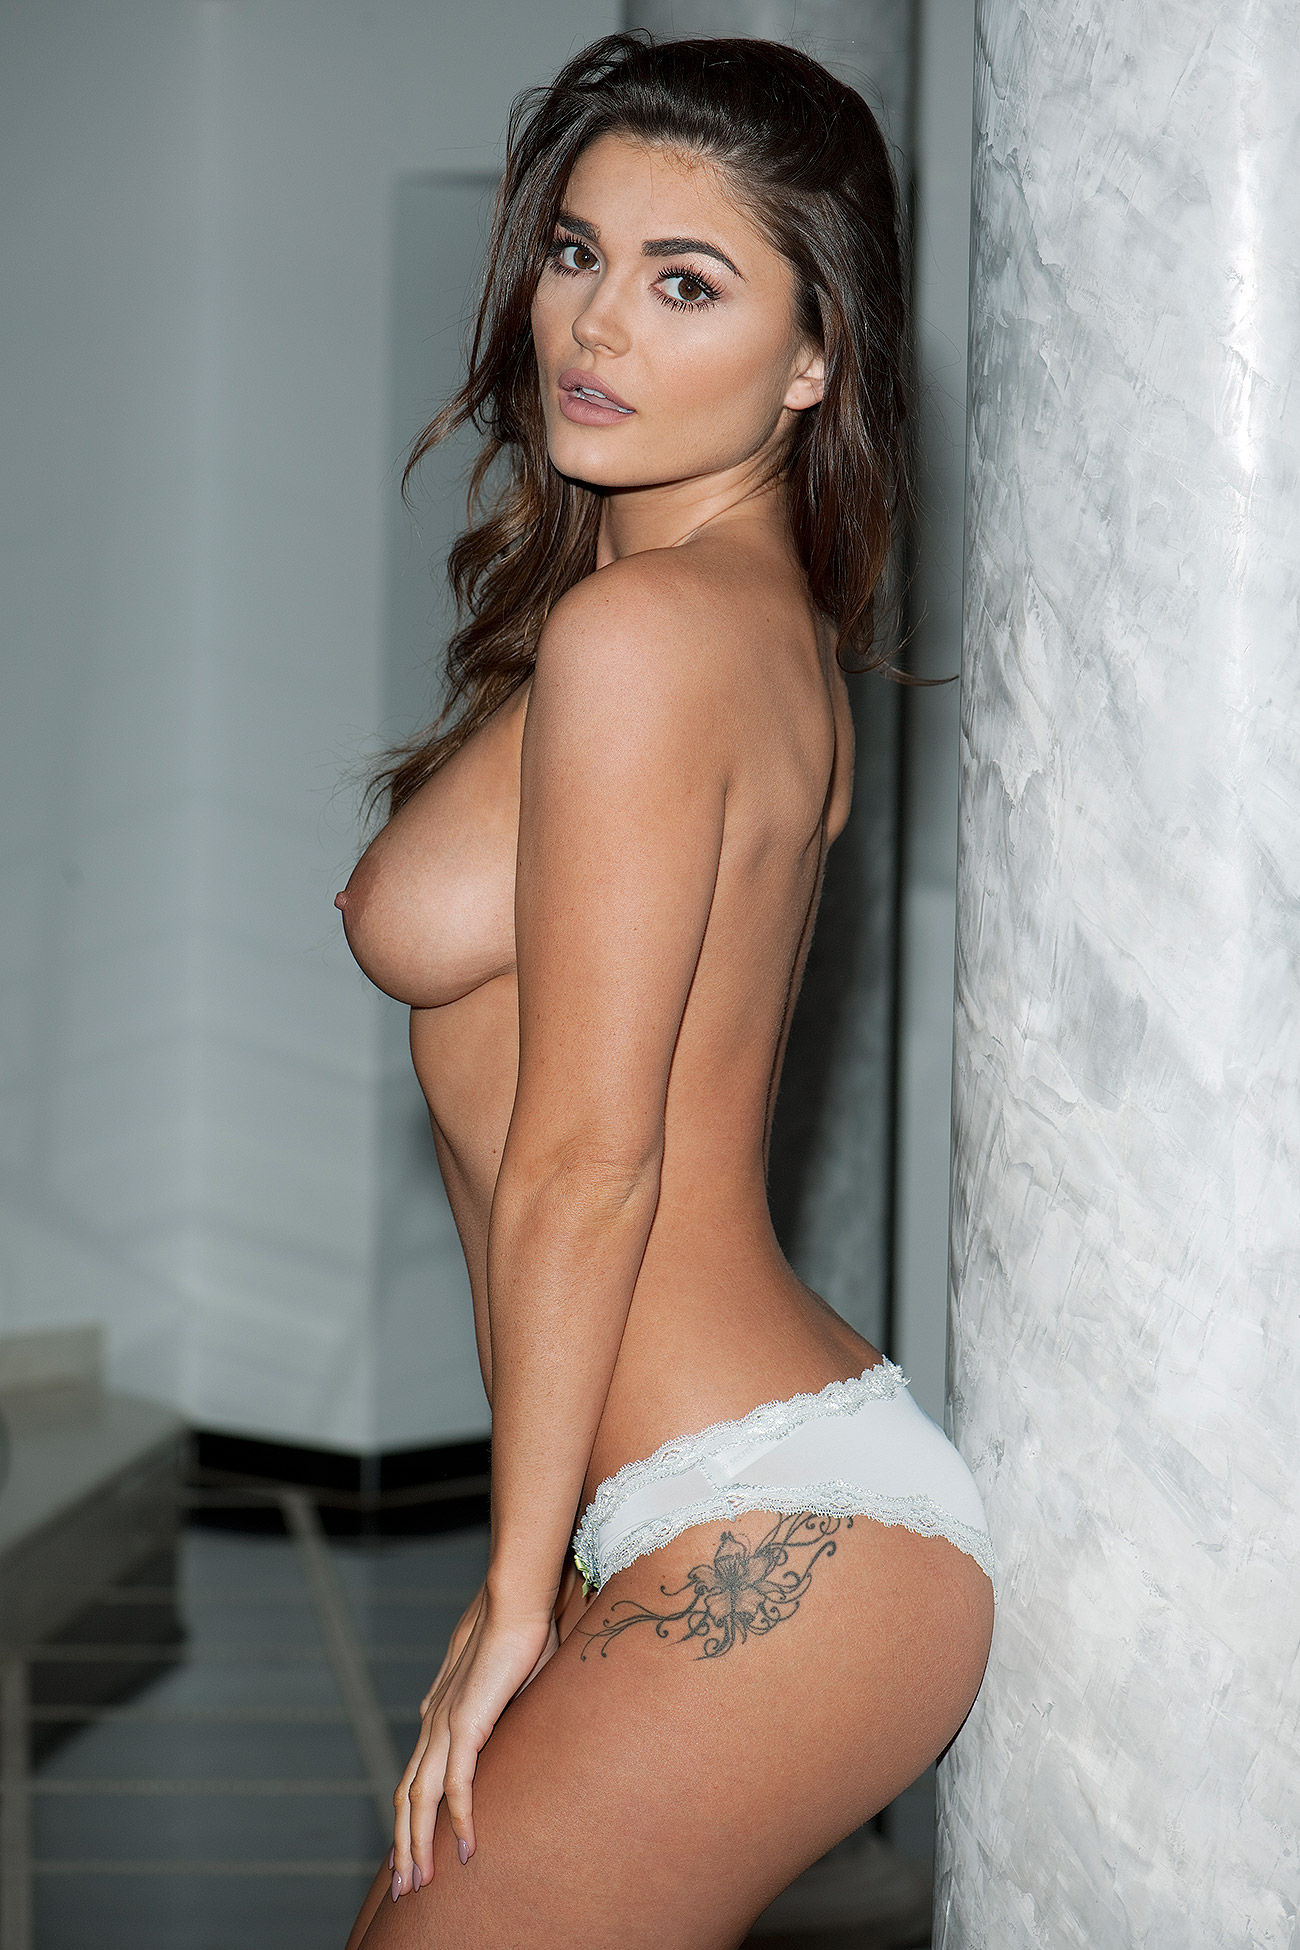 India Reynolds Topless Photos 1